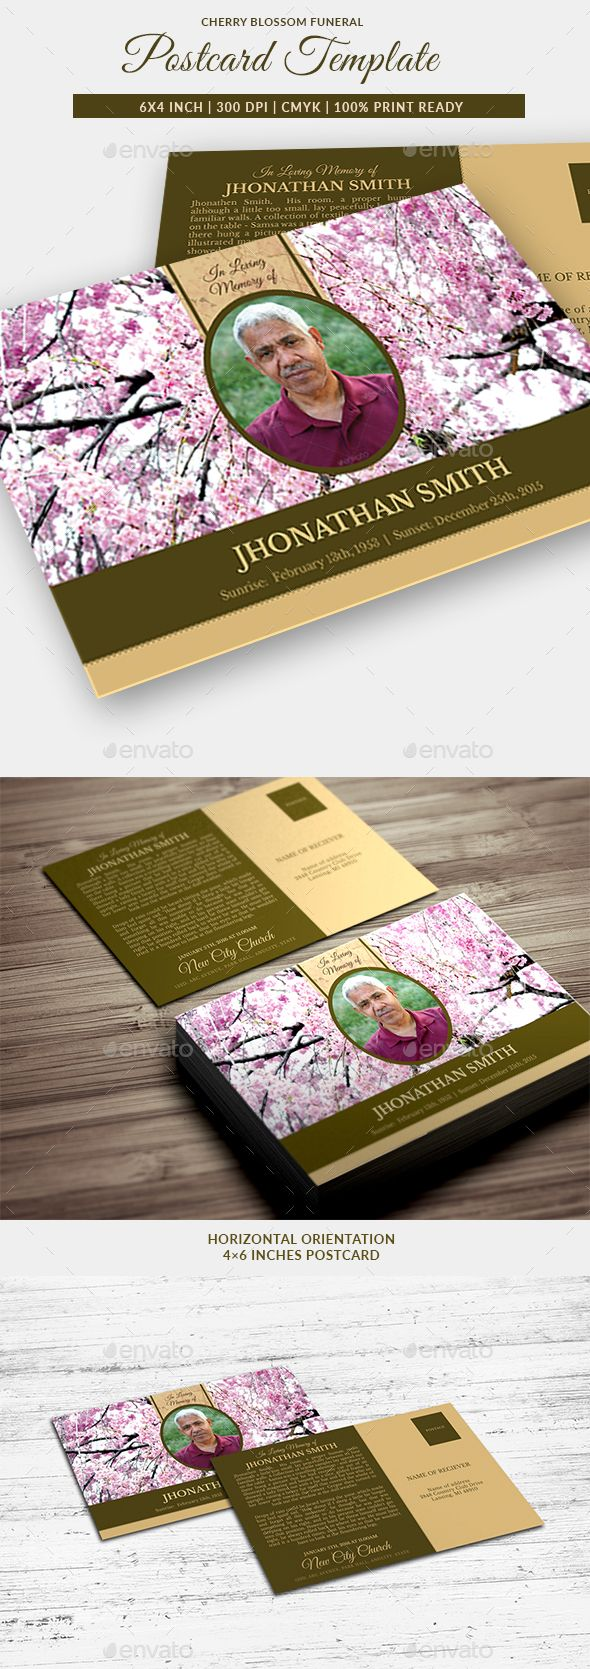 Cherry Blossom Funeral Program Postcard Template, great for any memorial or funeral events. All text and graphics in the files ar